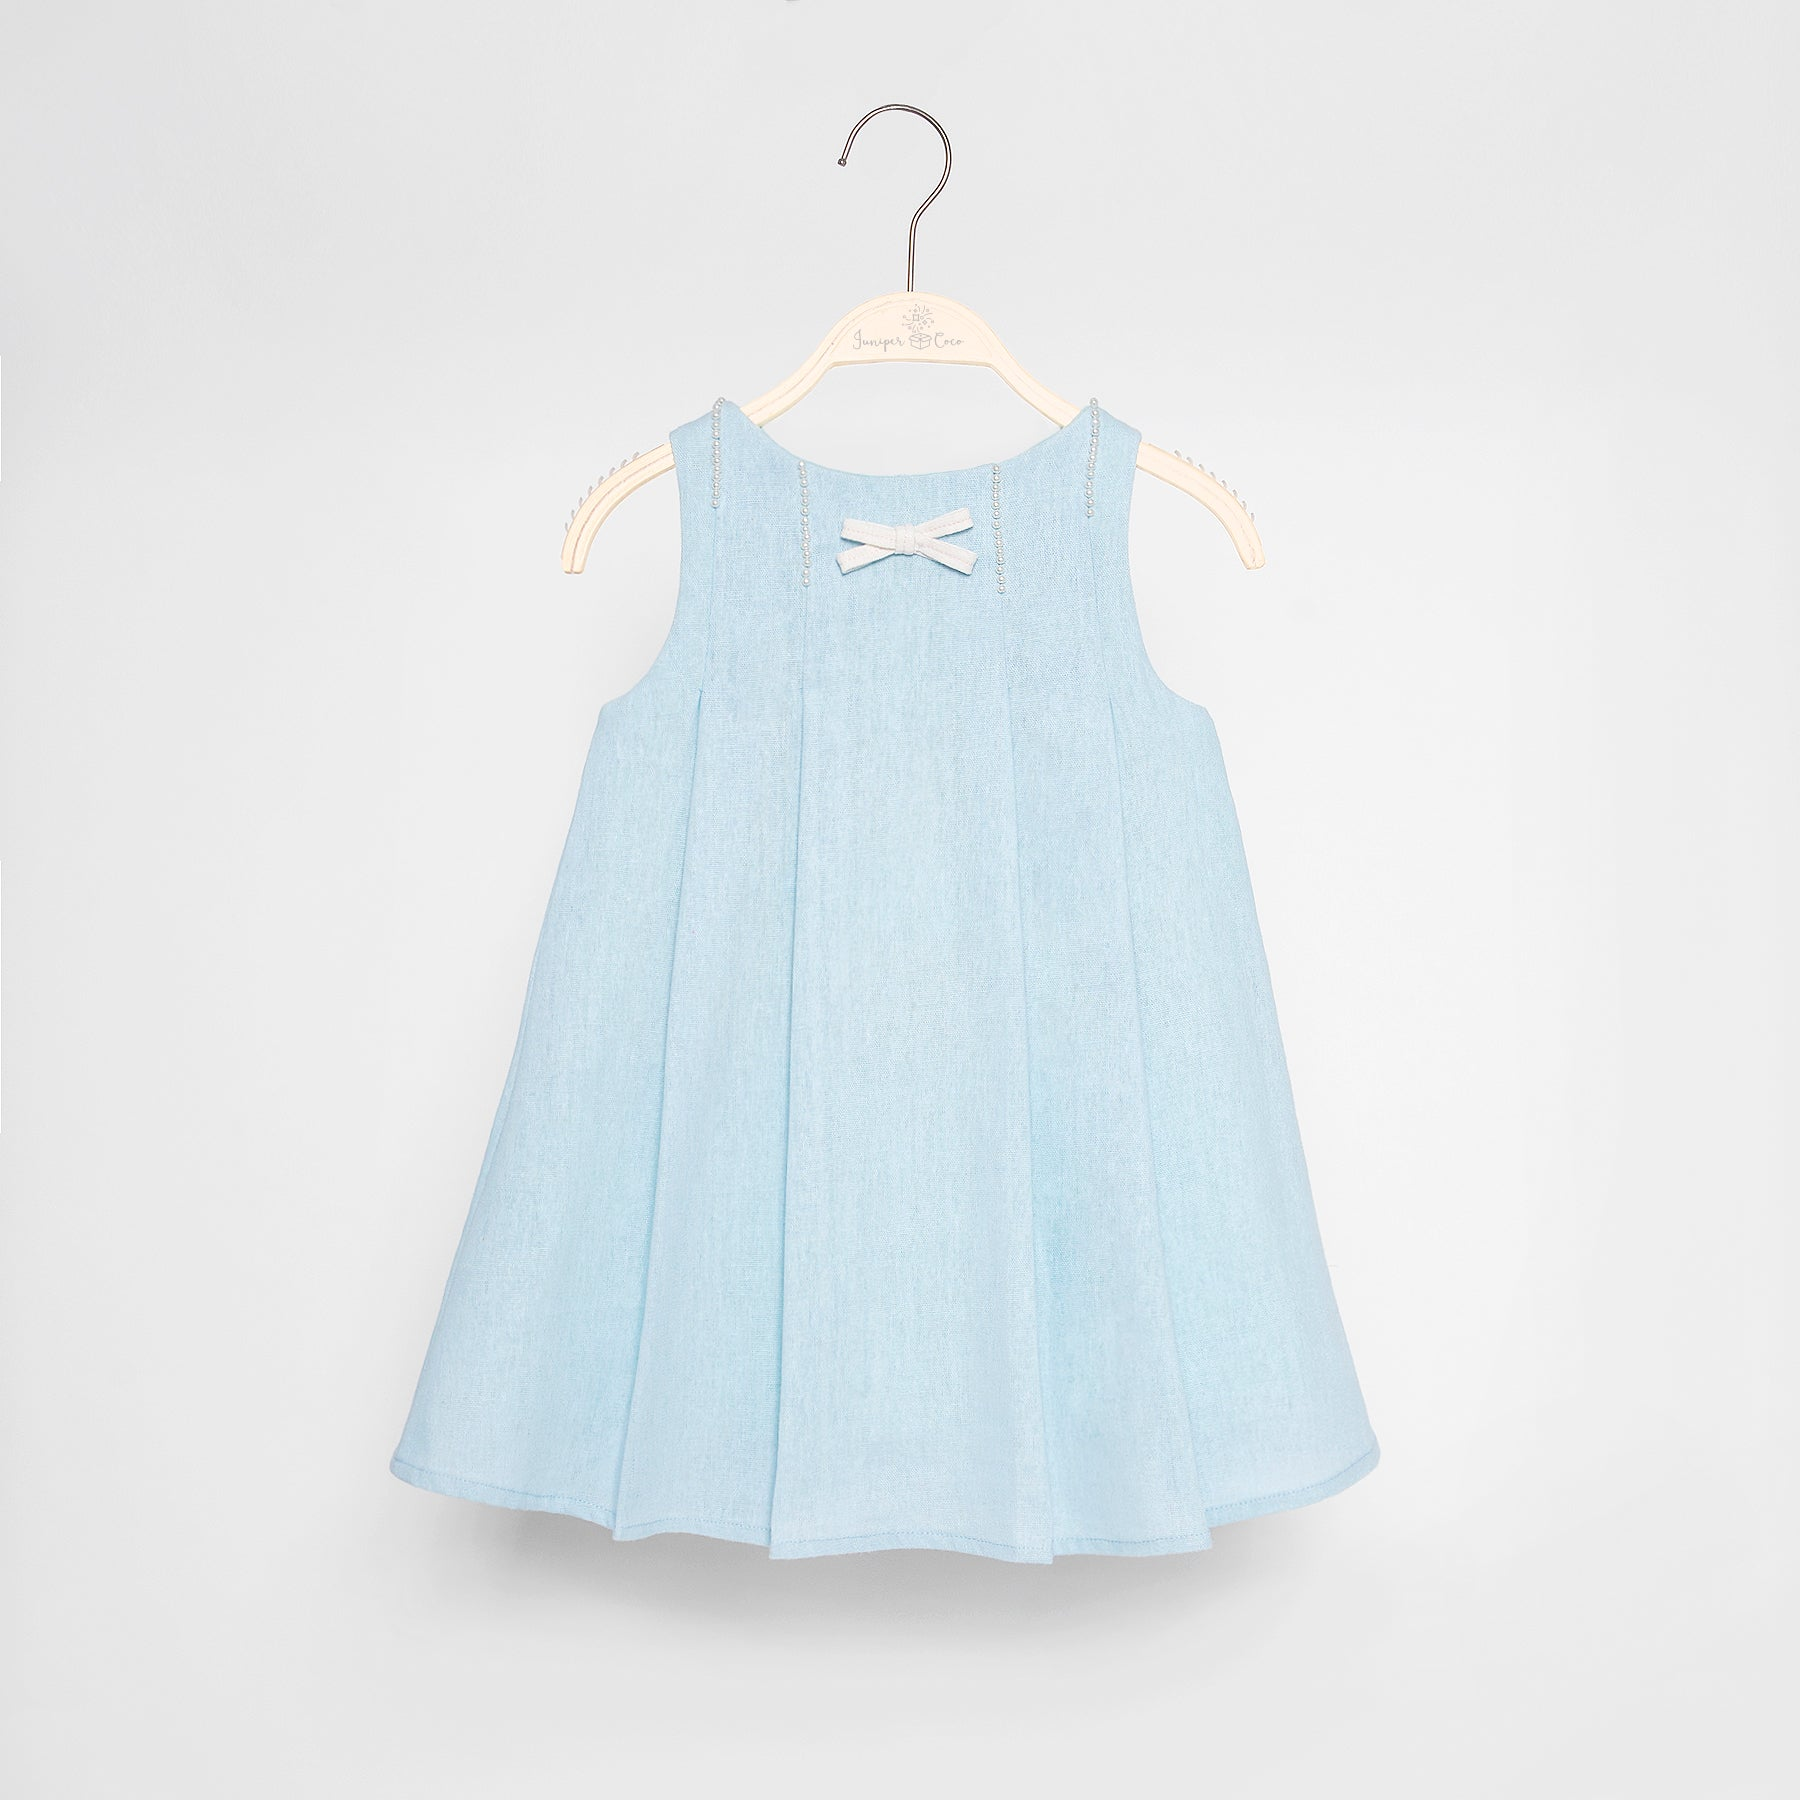 Juniper Dress (Baby Blue)